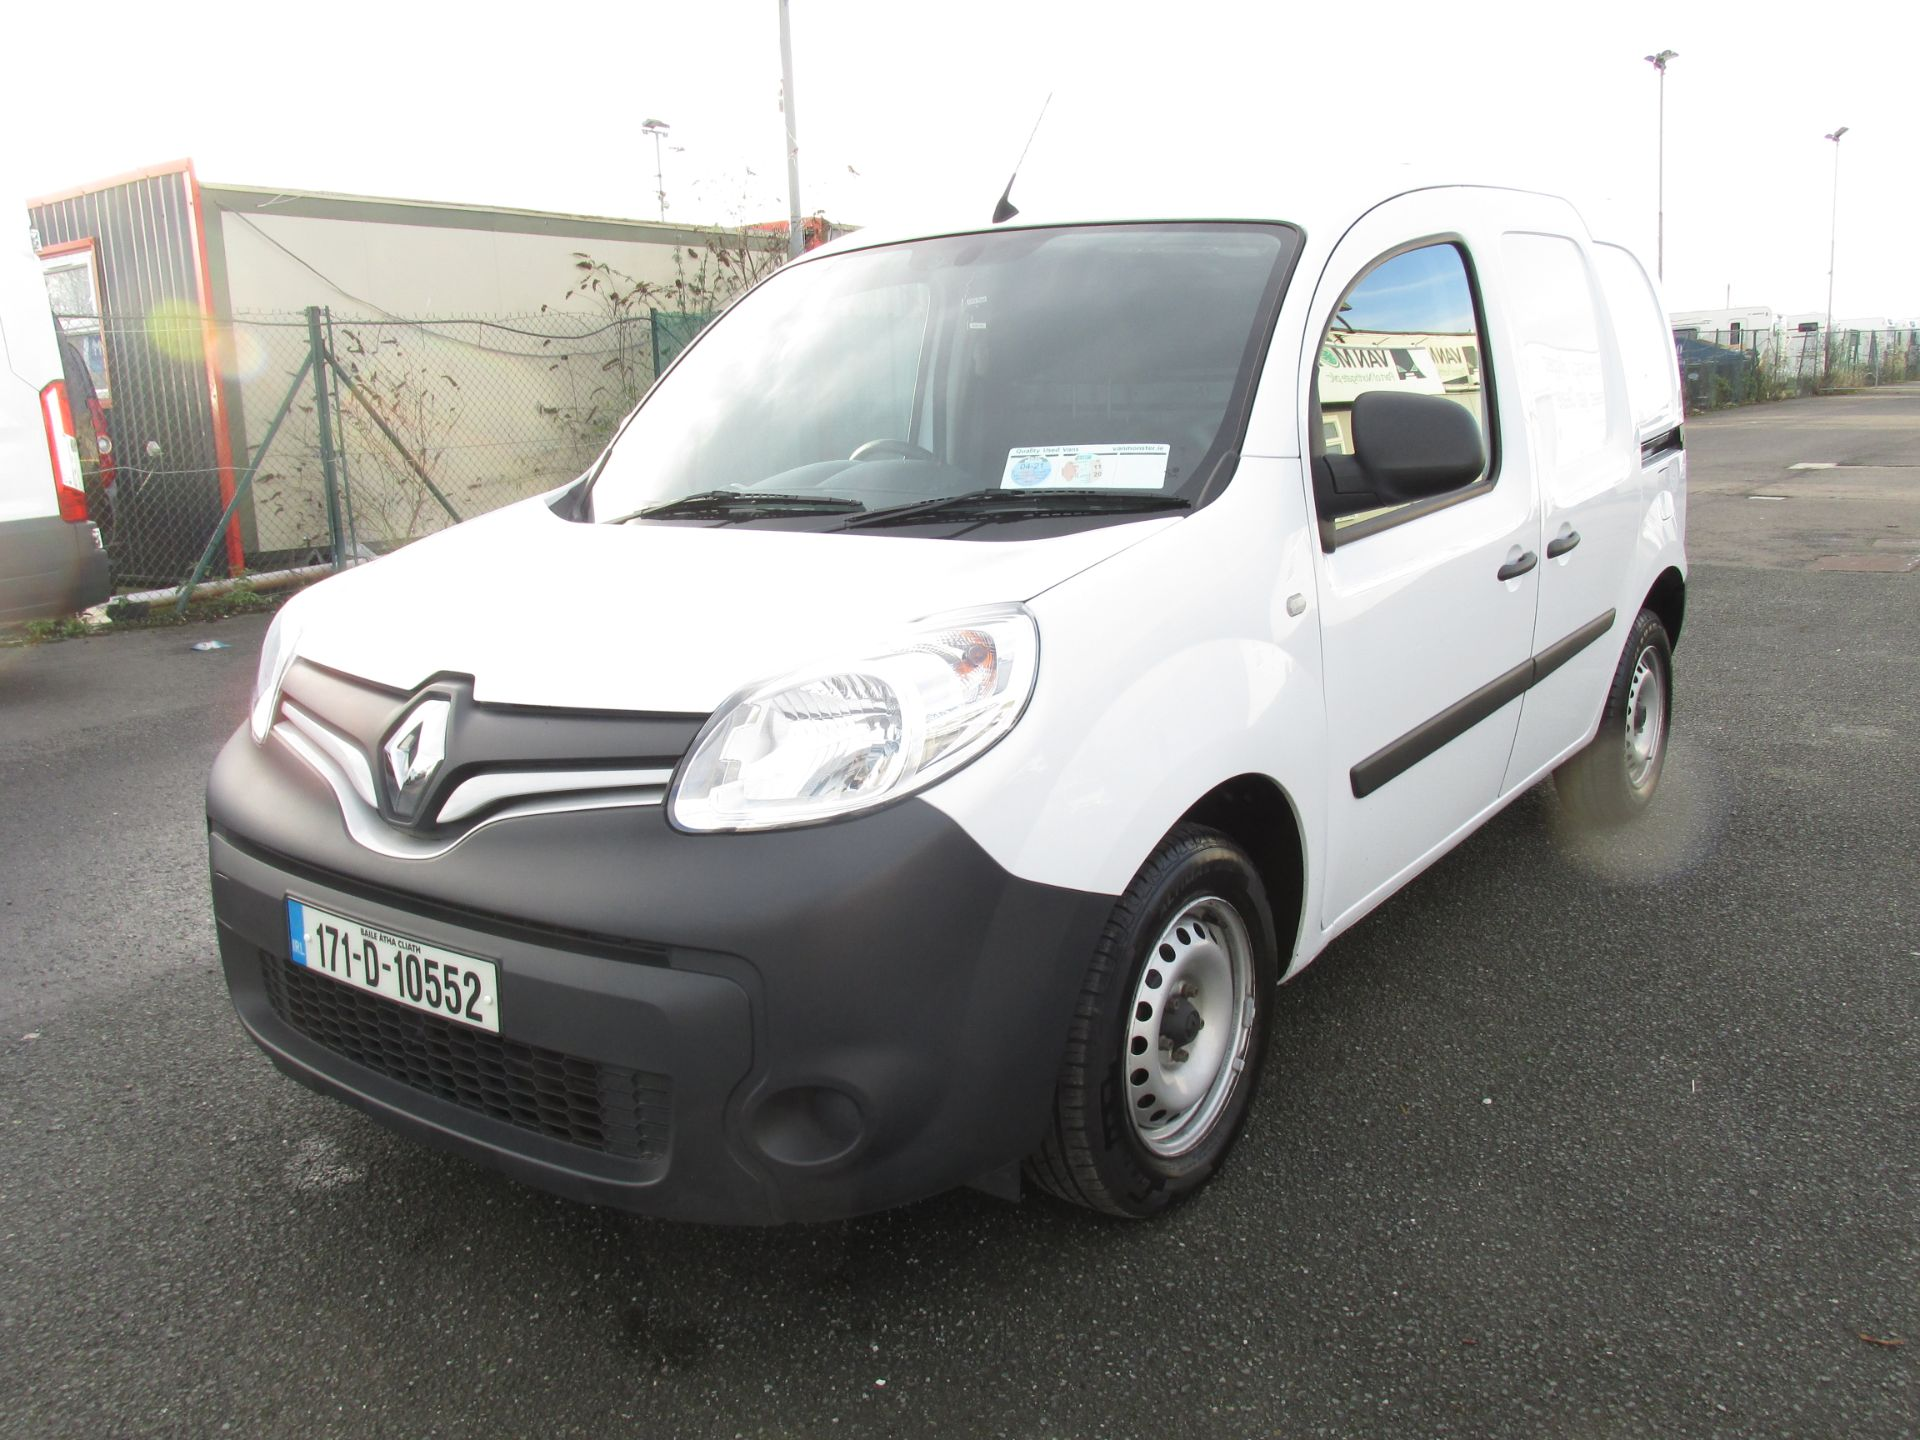 2017 Renault Kangoo ML19 Energy DCI 75 Business 2D click and collect call sales for more info (171D10552) Image 3